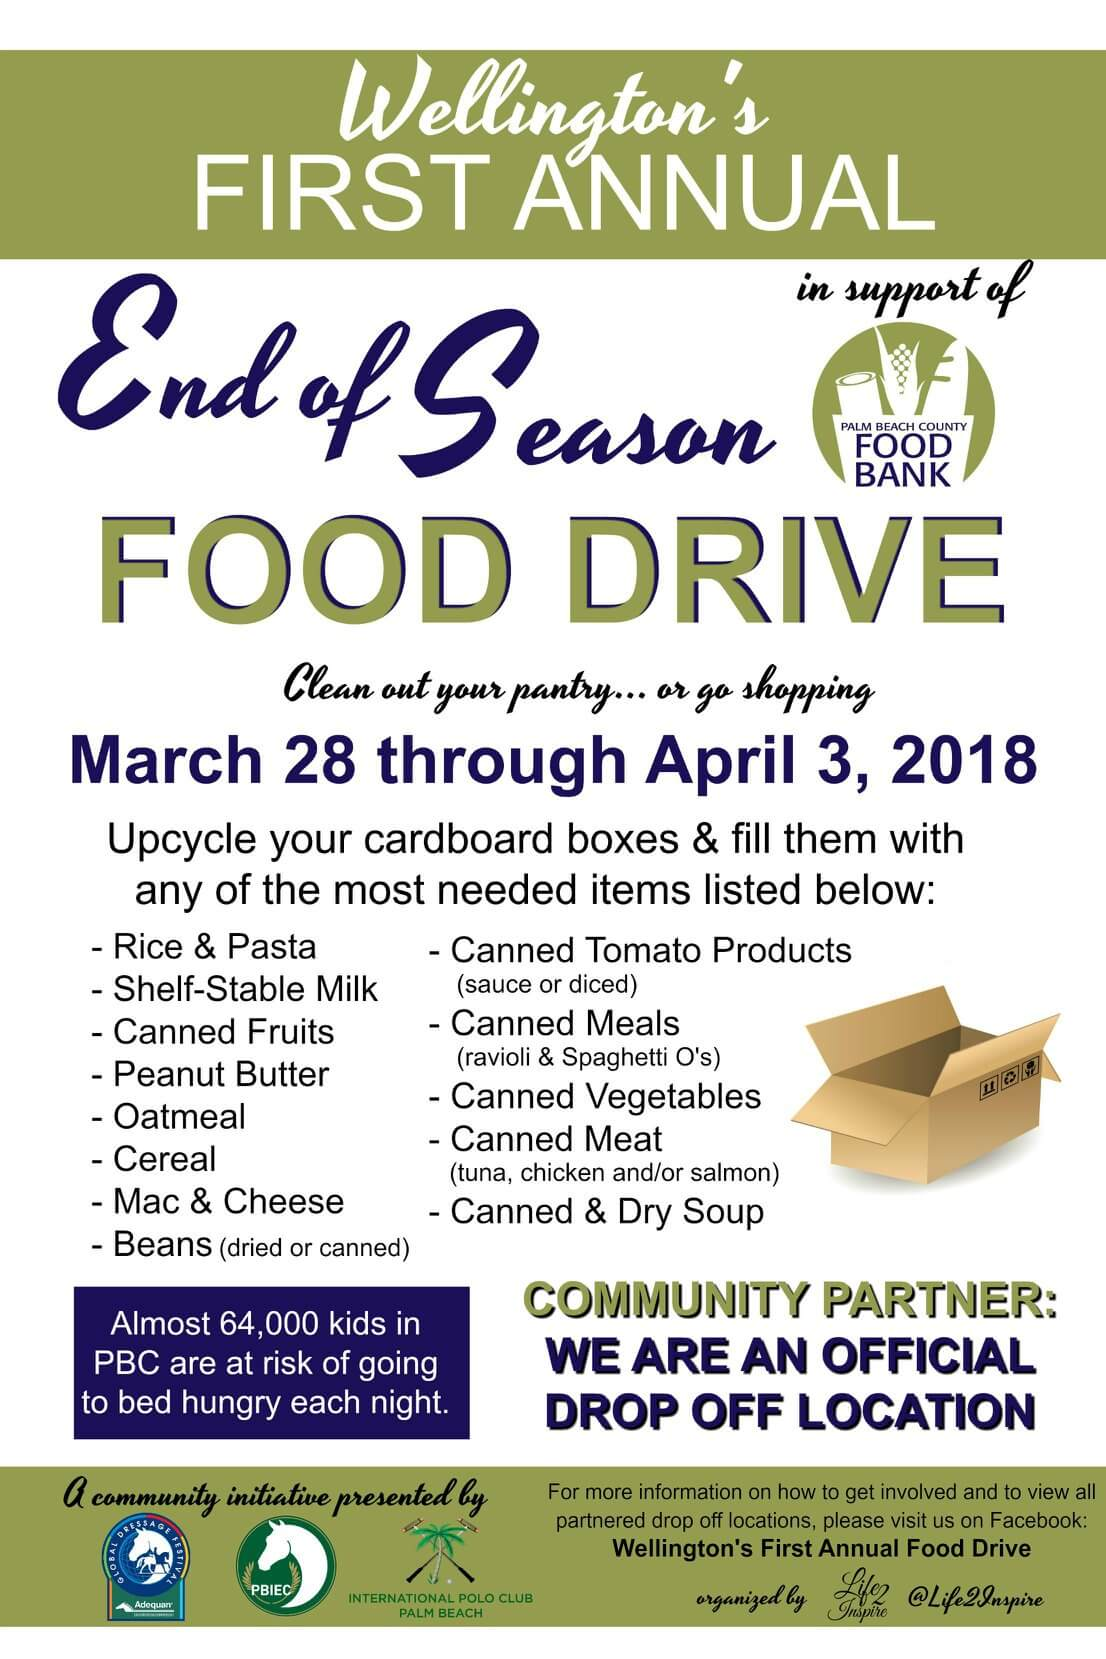 Support Needed For This Food Drive